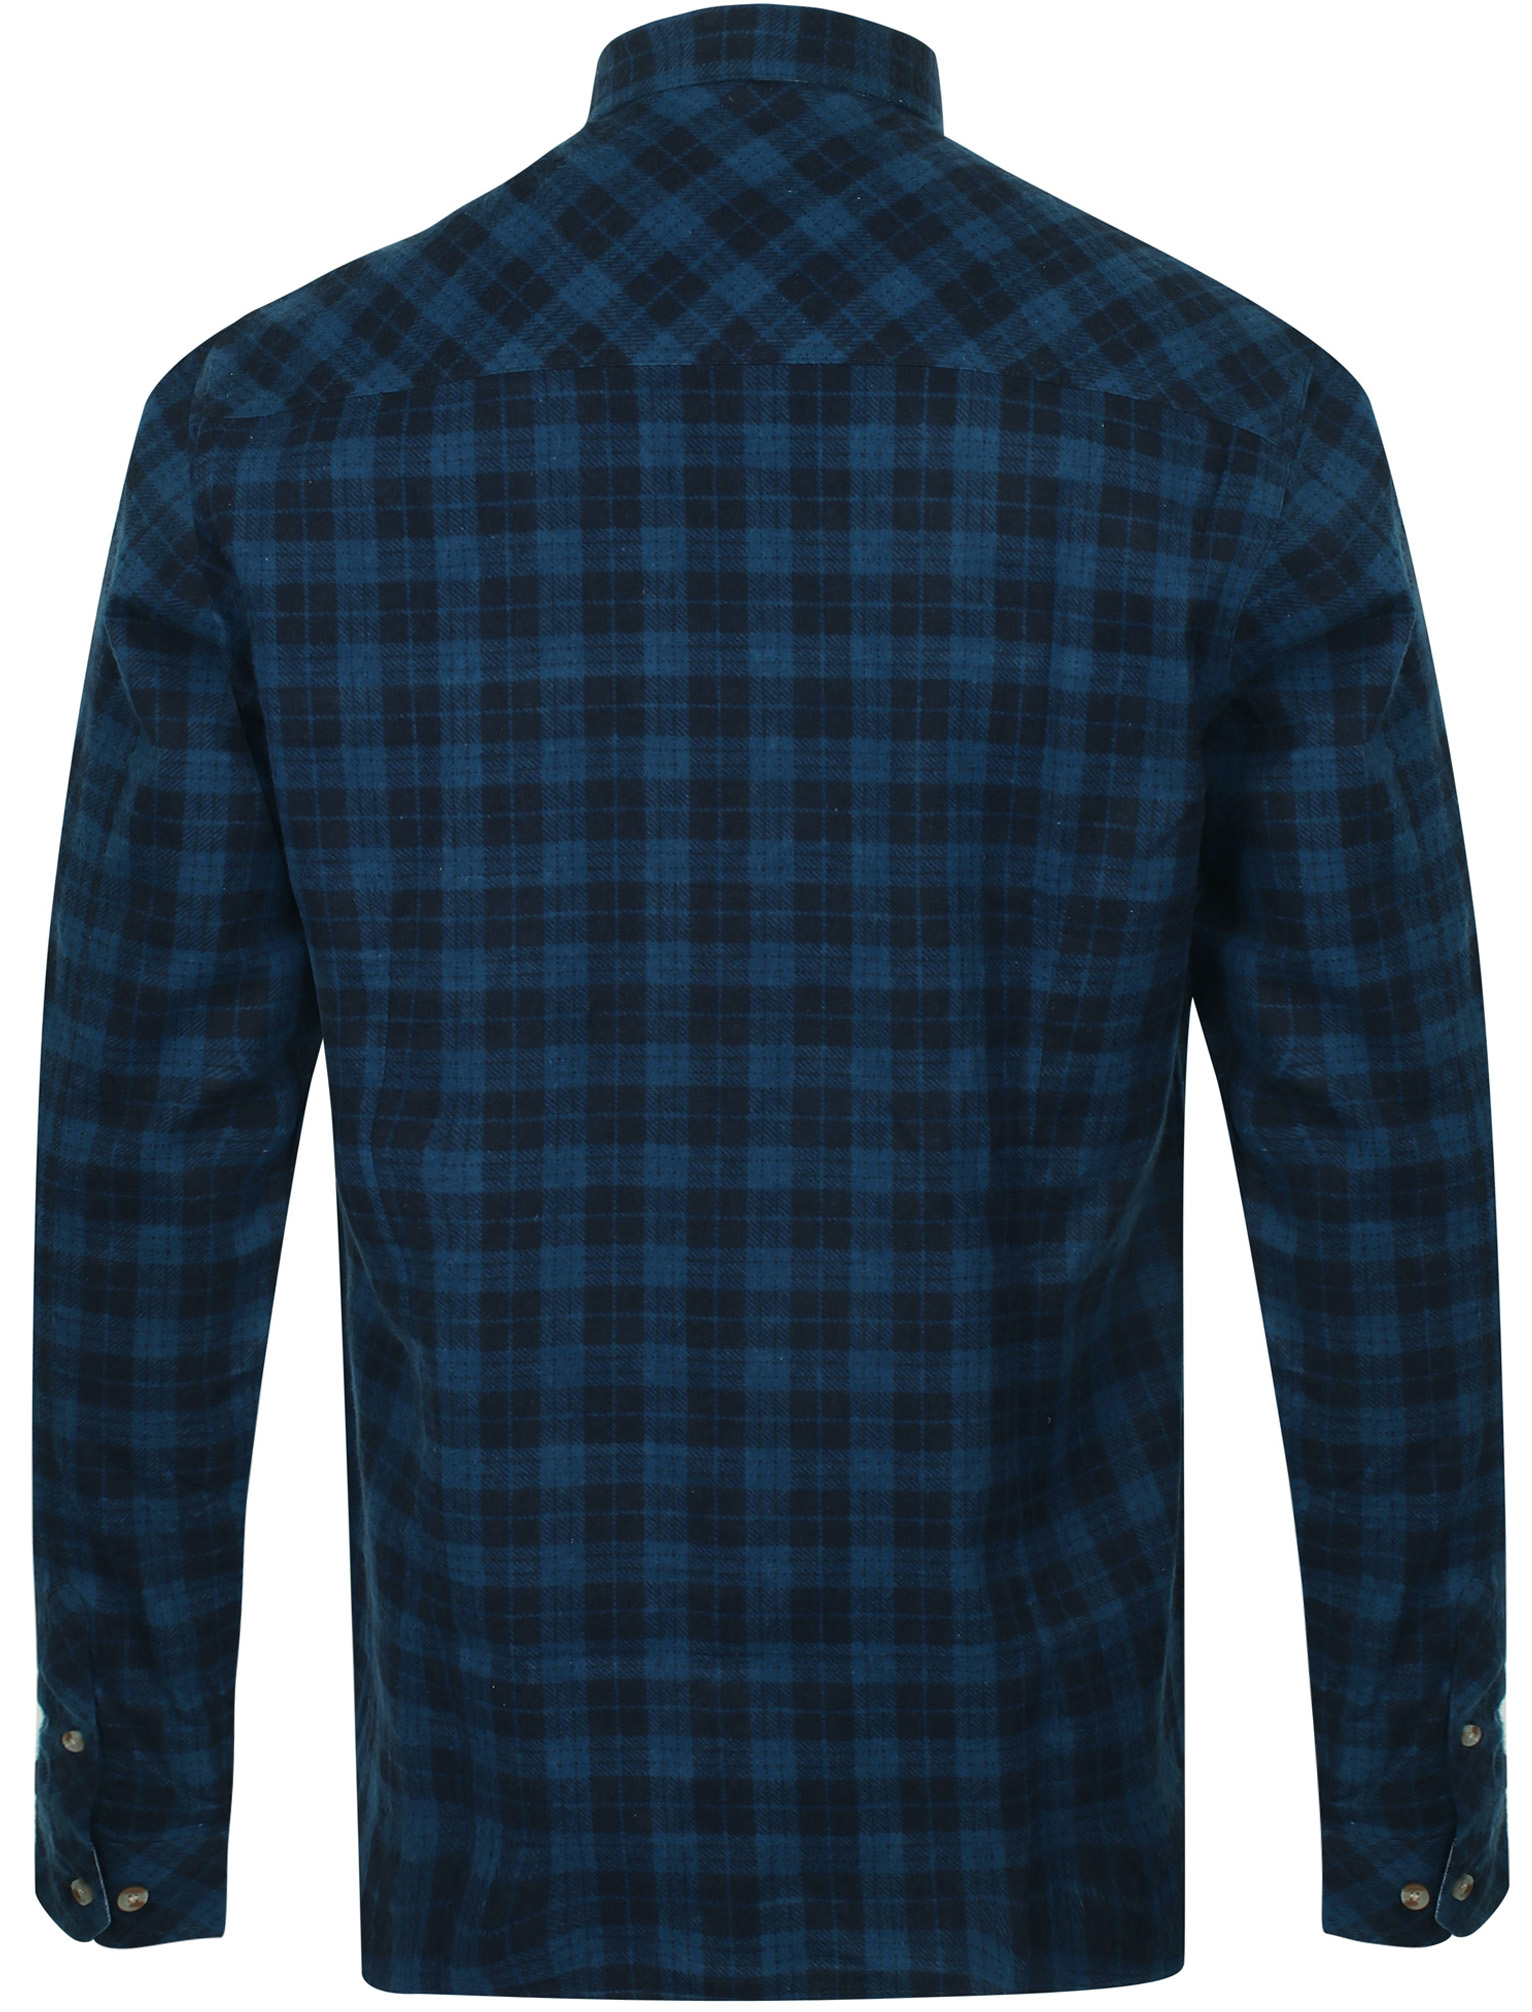 New-Mens-Tokyo-Laundry-Cotton-Long-Sleeve-Checked-Flannel-Shirt-Size-S-XL thumbnail 13